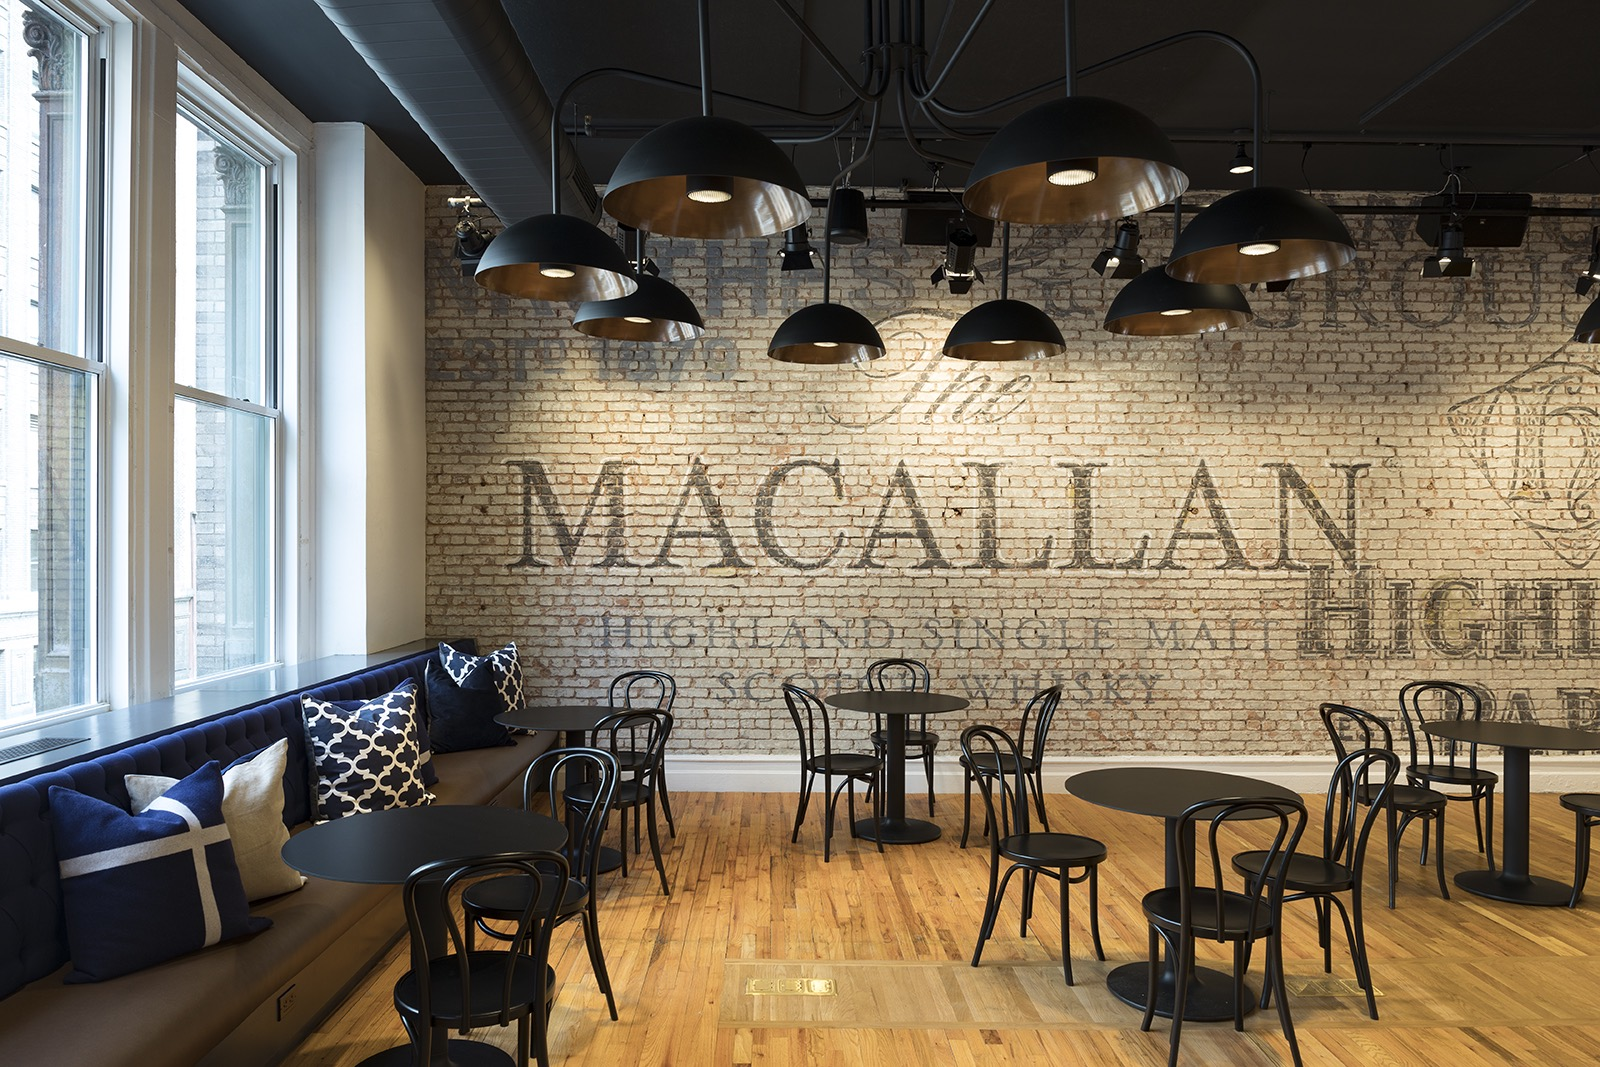 Black chairs and tables beside a brick wall with names of whiskey brands managed by Edrington Spirits. MEP designed by 2L Engineering.